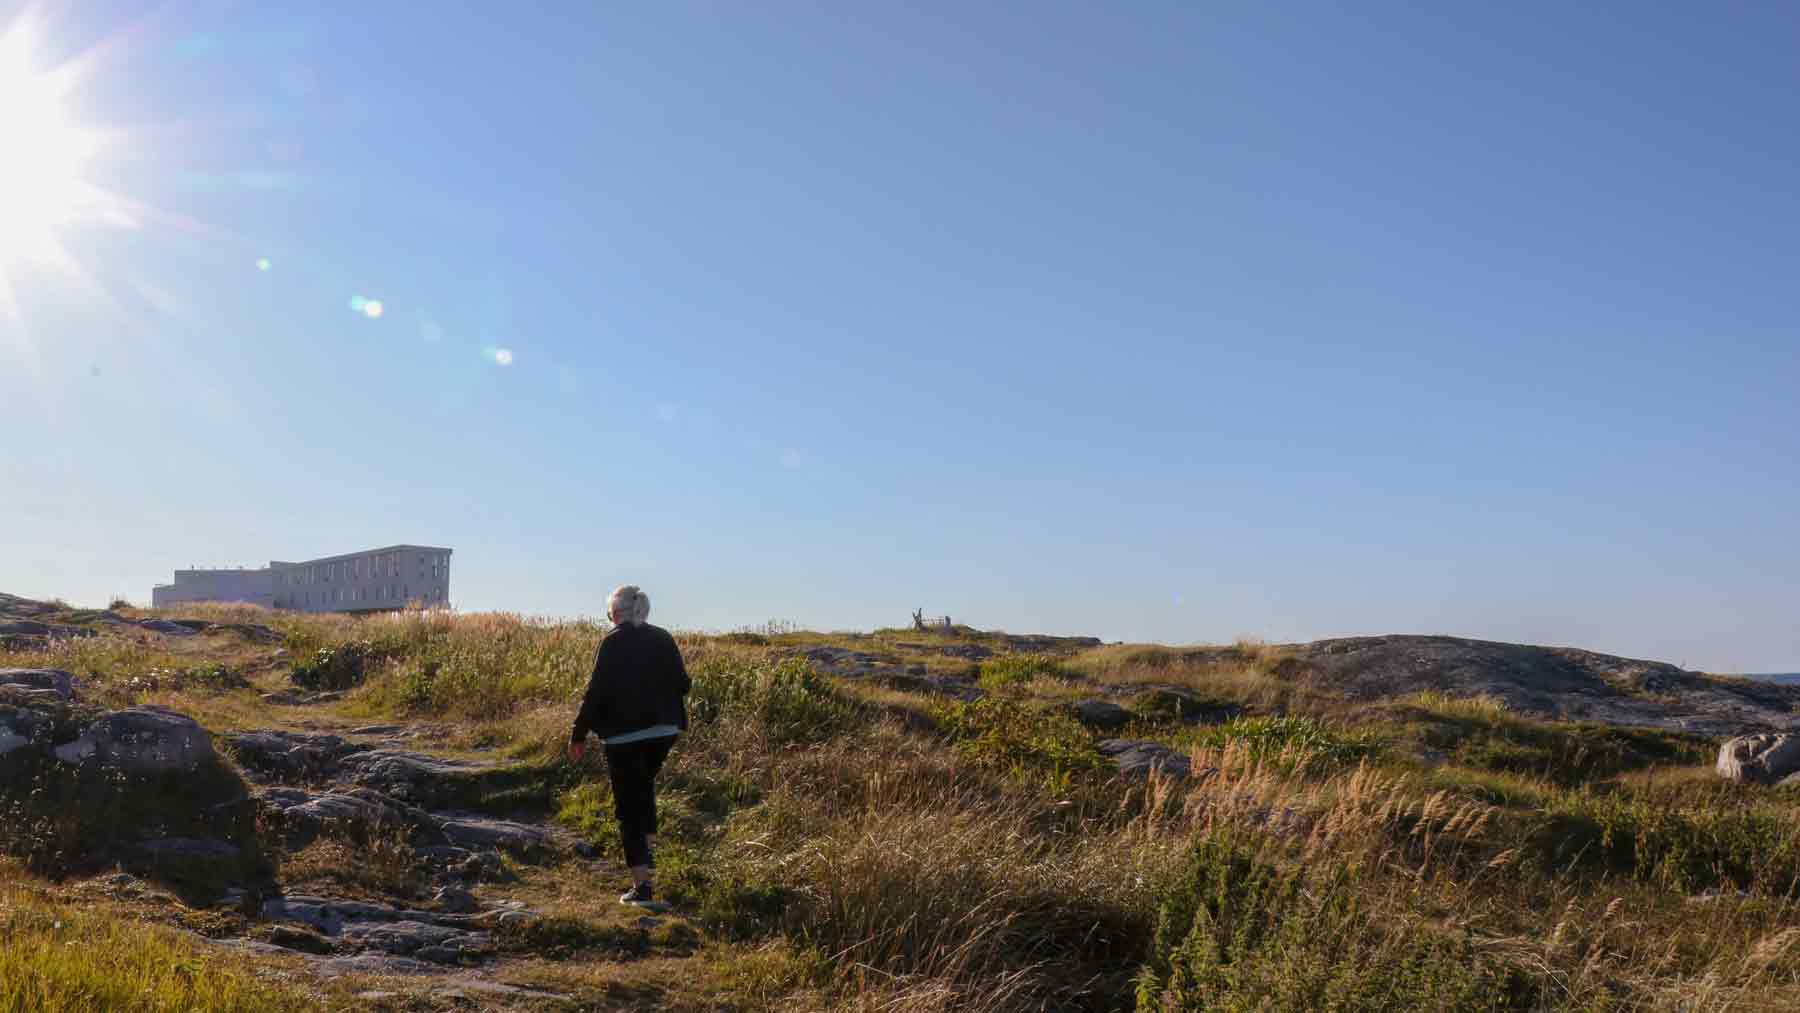 The Asmuss founder's Mum walking up a hill into the sun on Fogo Island